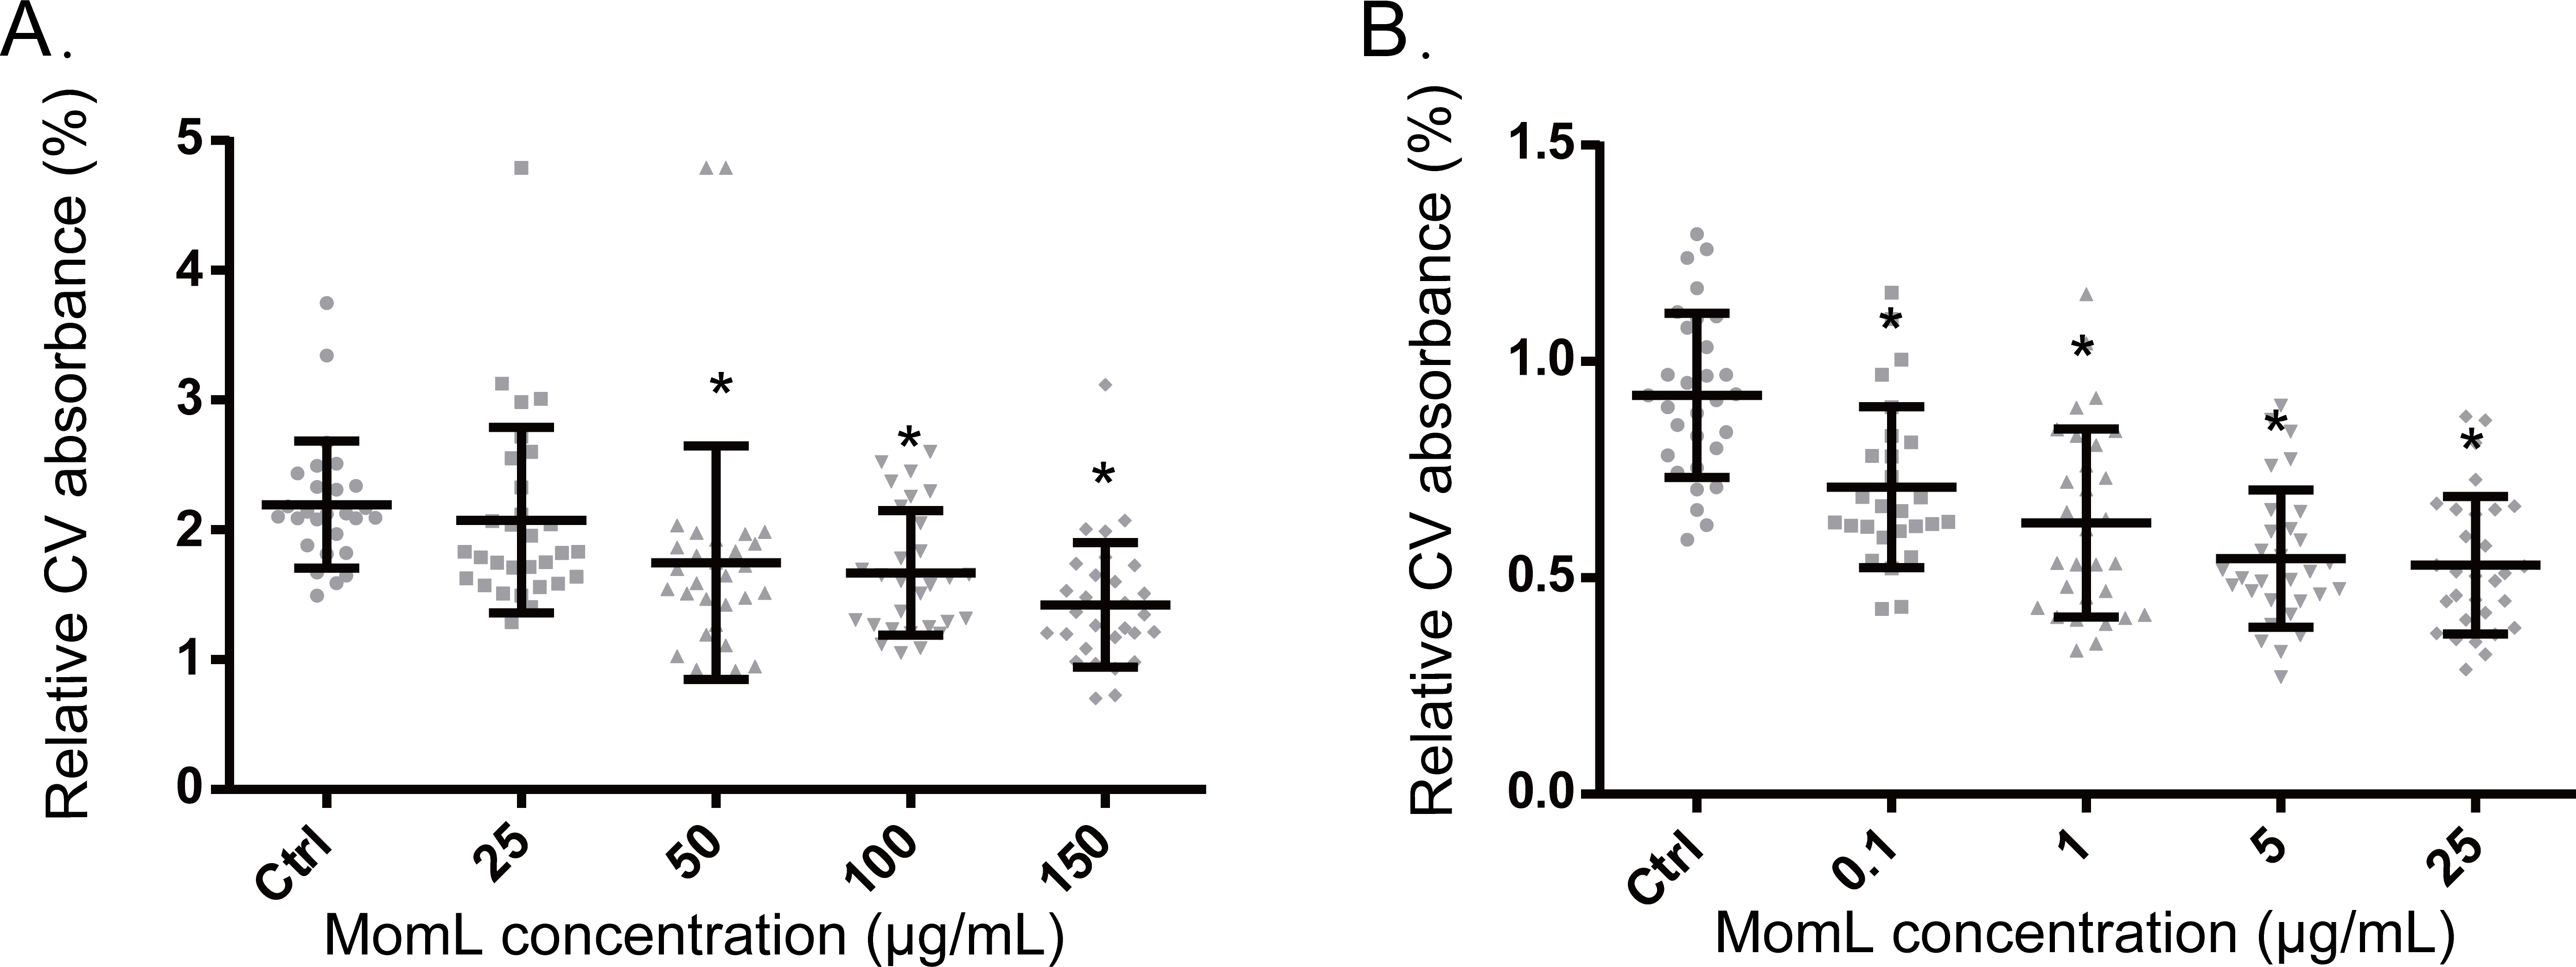 pitfalls associated with evaluating enzymatic quorum quenching activity  the case of moml and